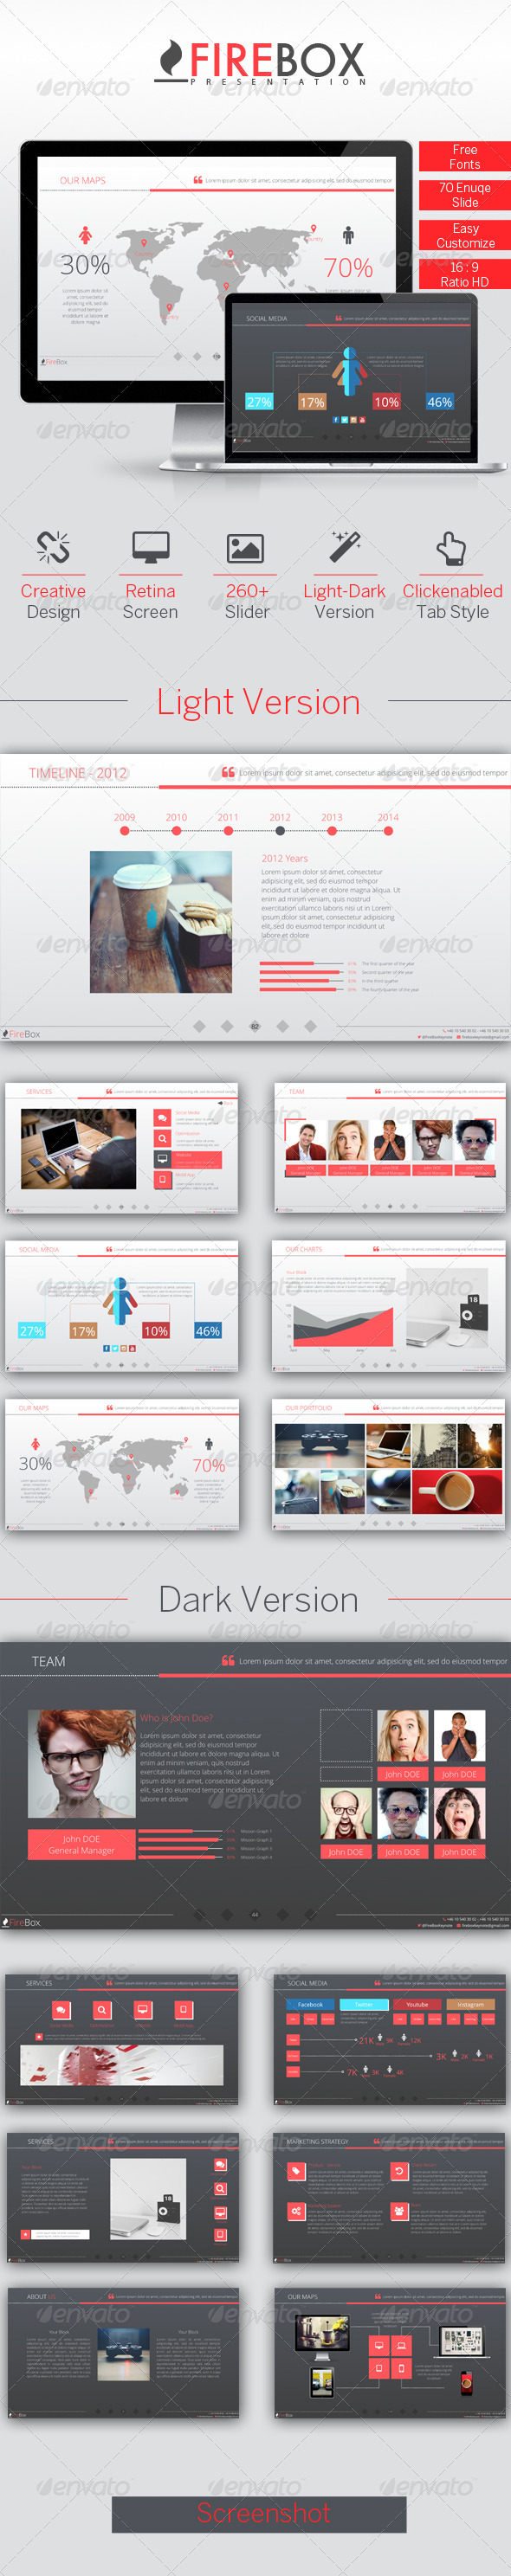 GraphicRiver FireBox Creative PowerPoint Presentation 7793283